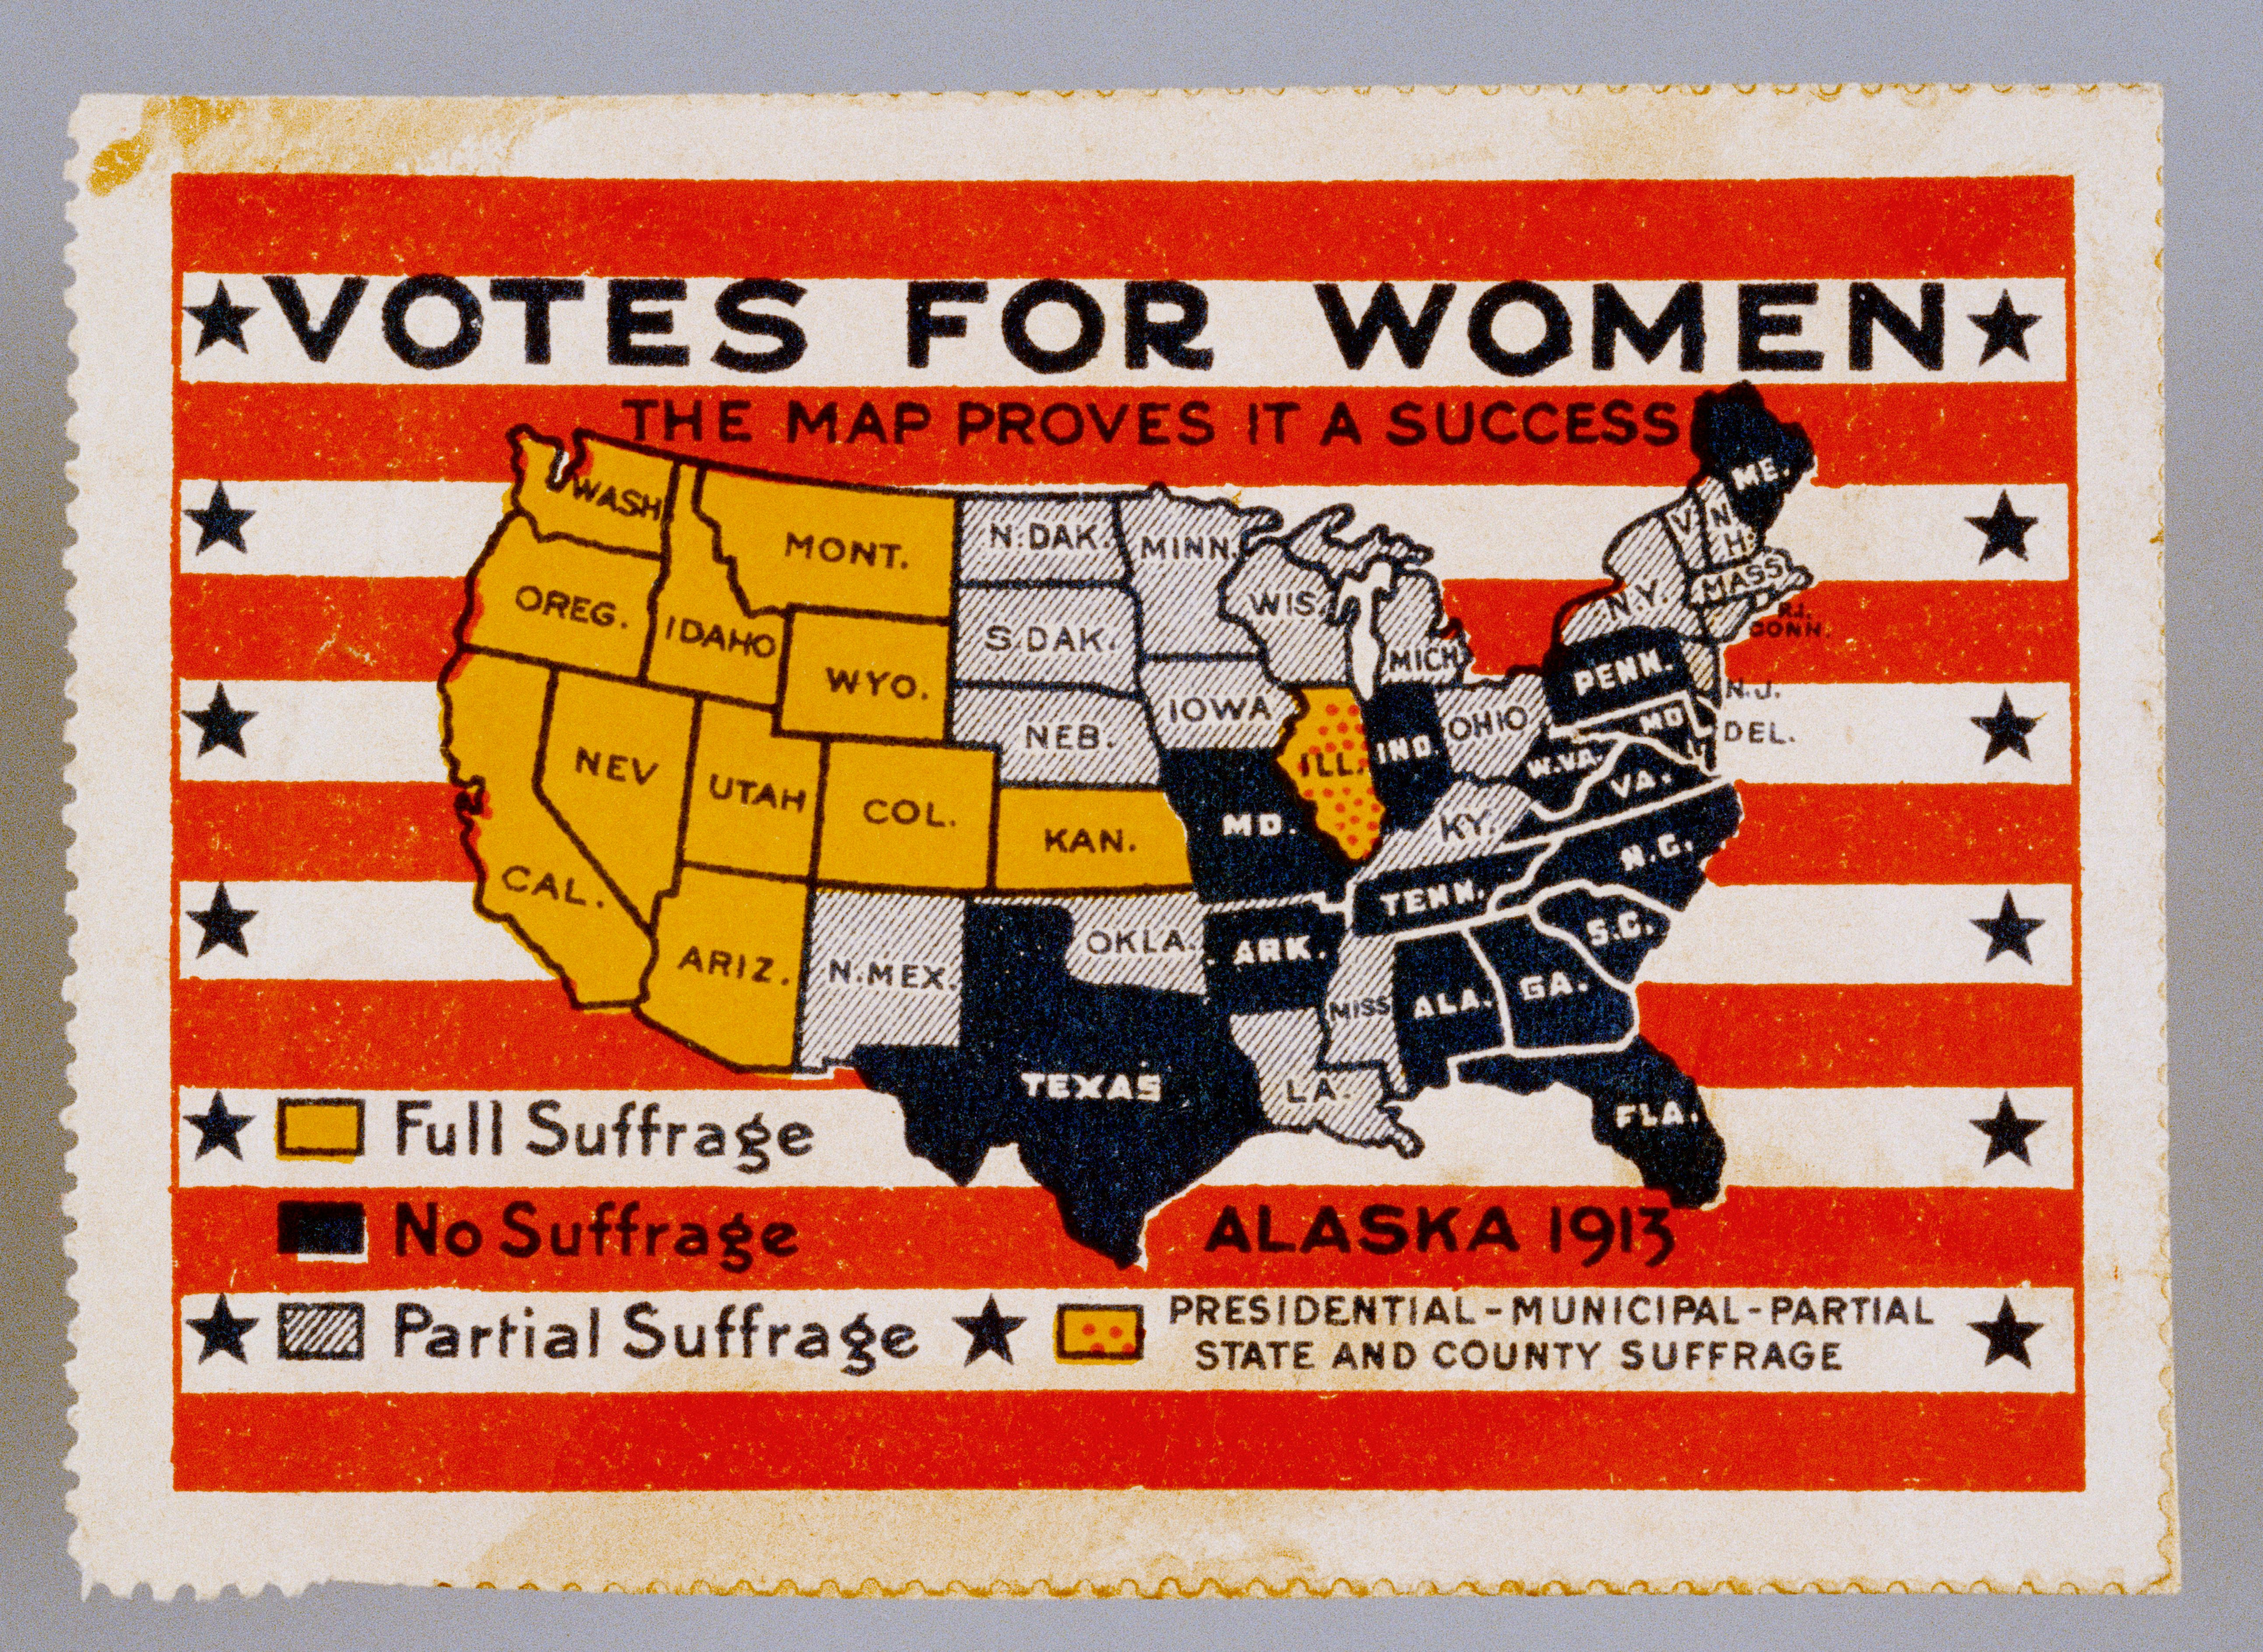 'Votes for Women' poster stamp showing a map of the US indicating each state's position on suffrage in 1913. As evidenced by this period artifact, the western states were solidly behind women's right to vote. (Photo by David J. & Janice L. Frent/Corbis via Getty Images)